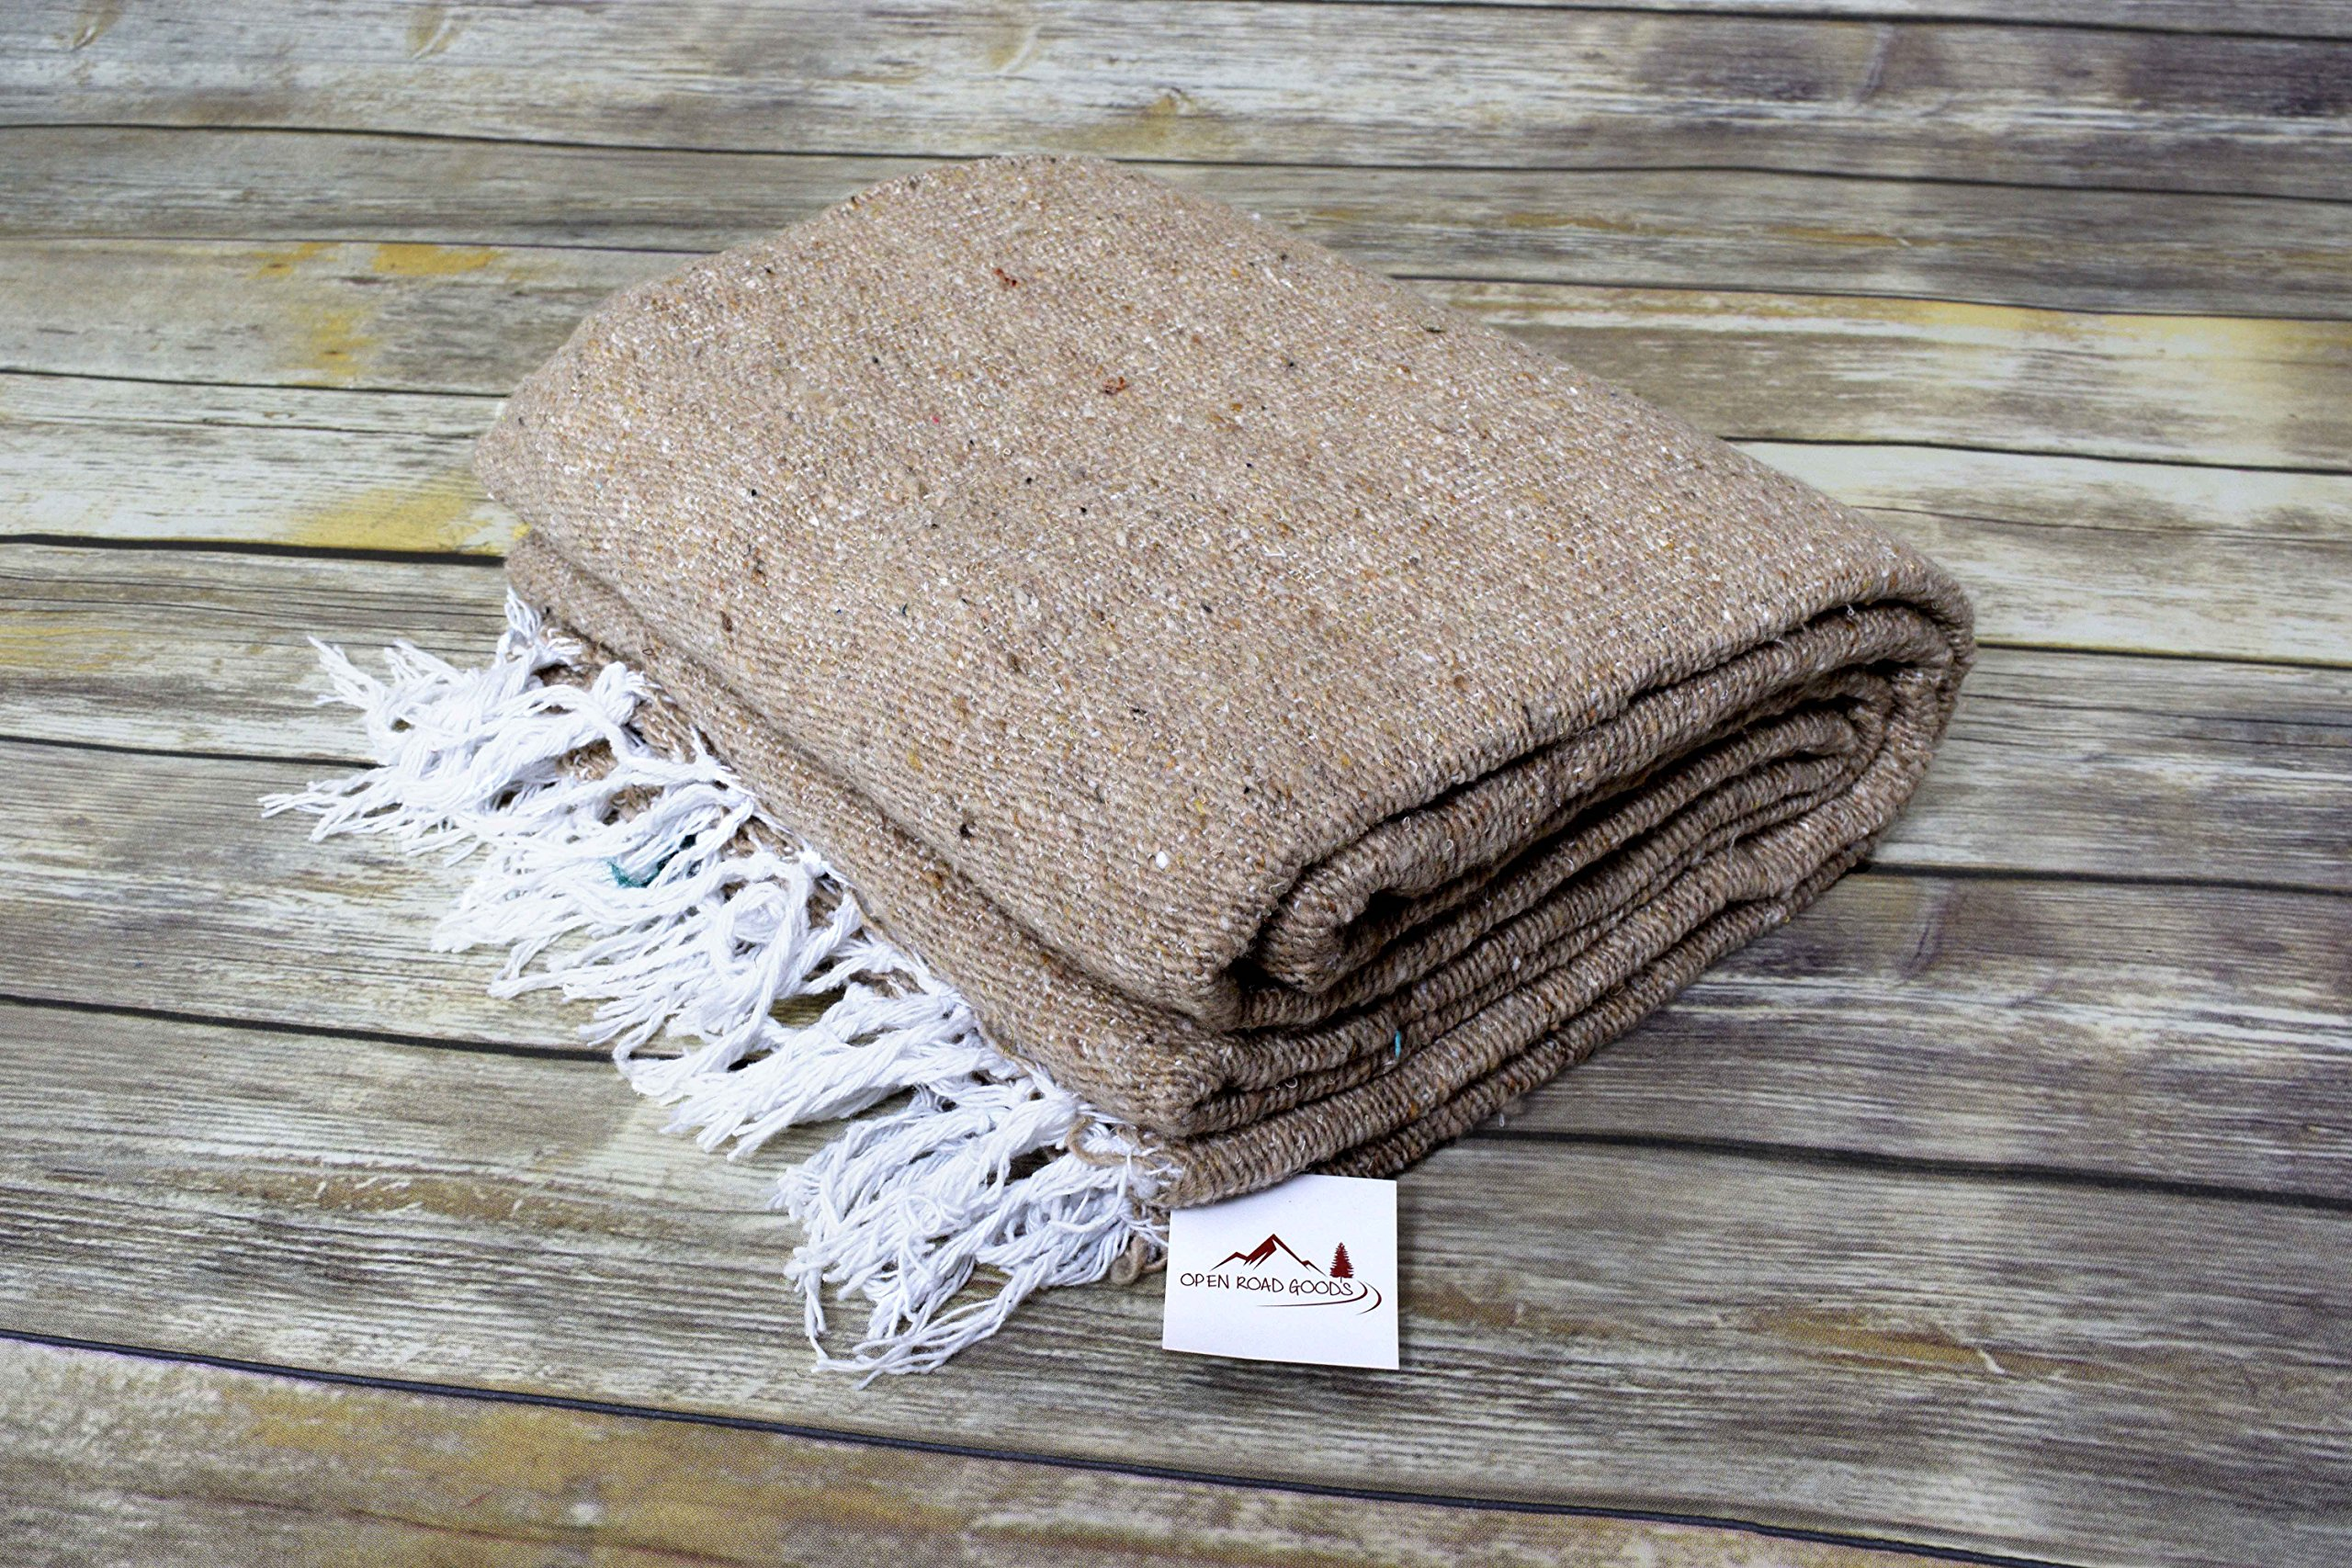 Open Road Goods Handmade Tan/Khaki Yoga Blanket - Thick Mexican Blanket or Throw - Made for Yoga! by Open Road Goods (Image #3)